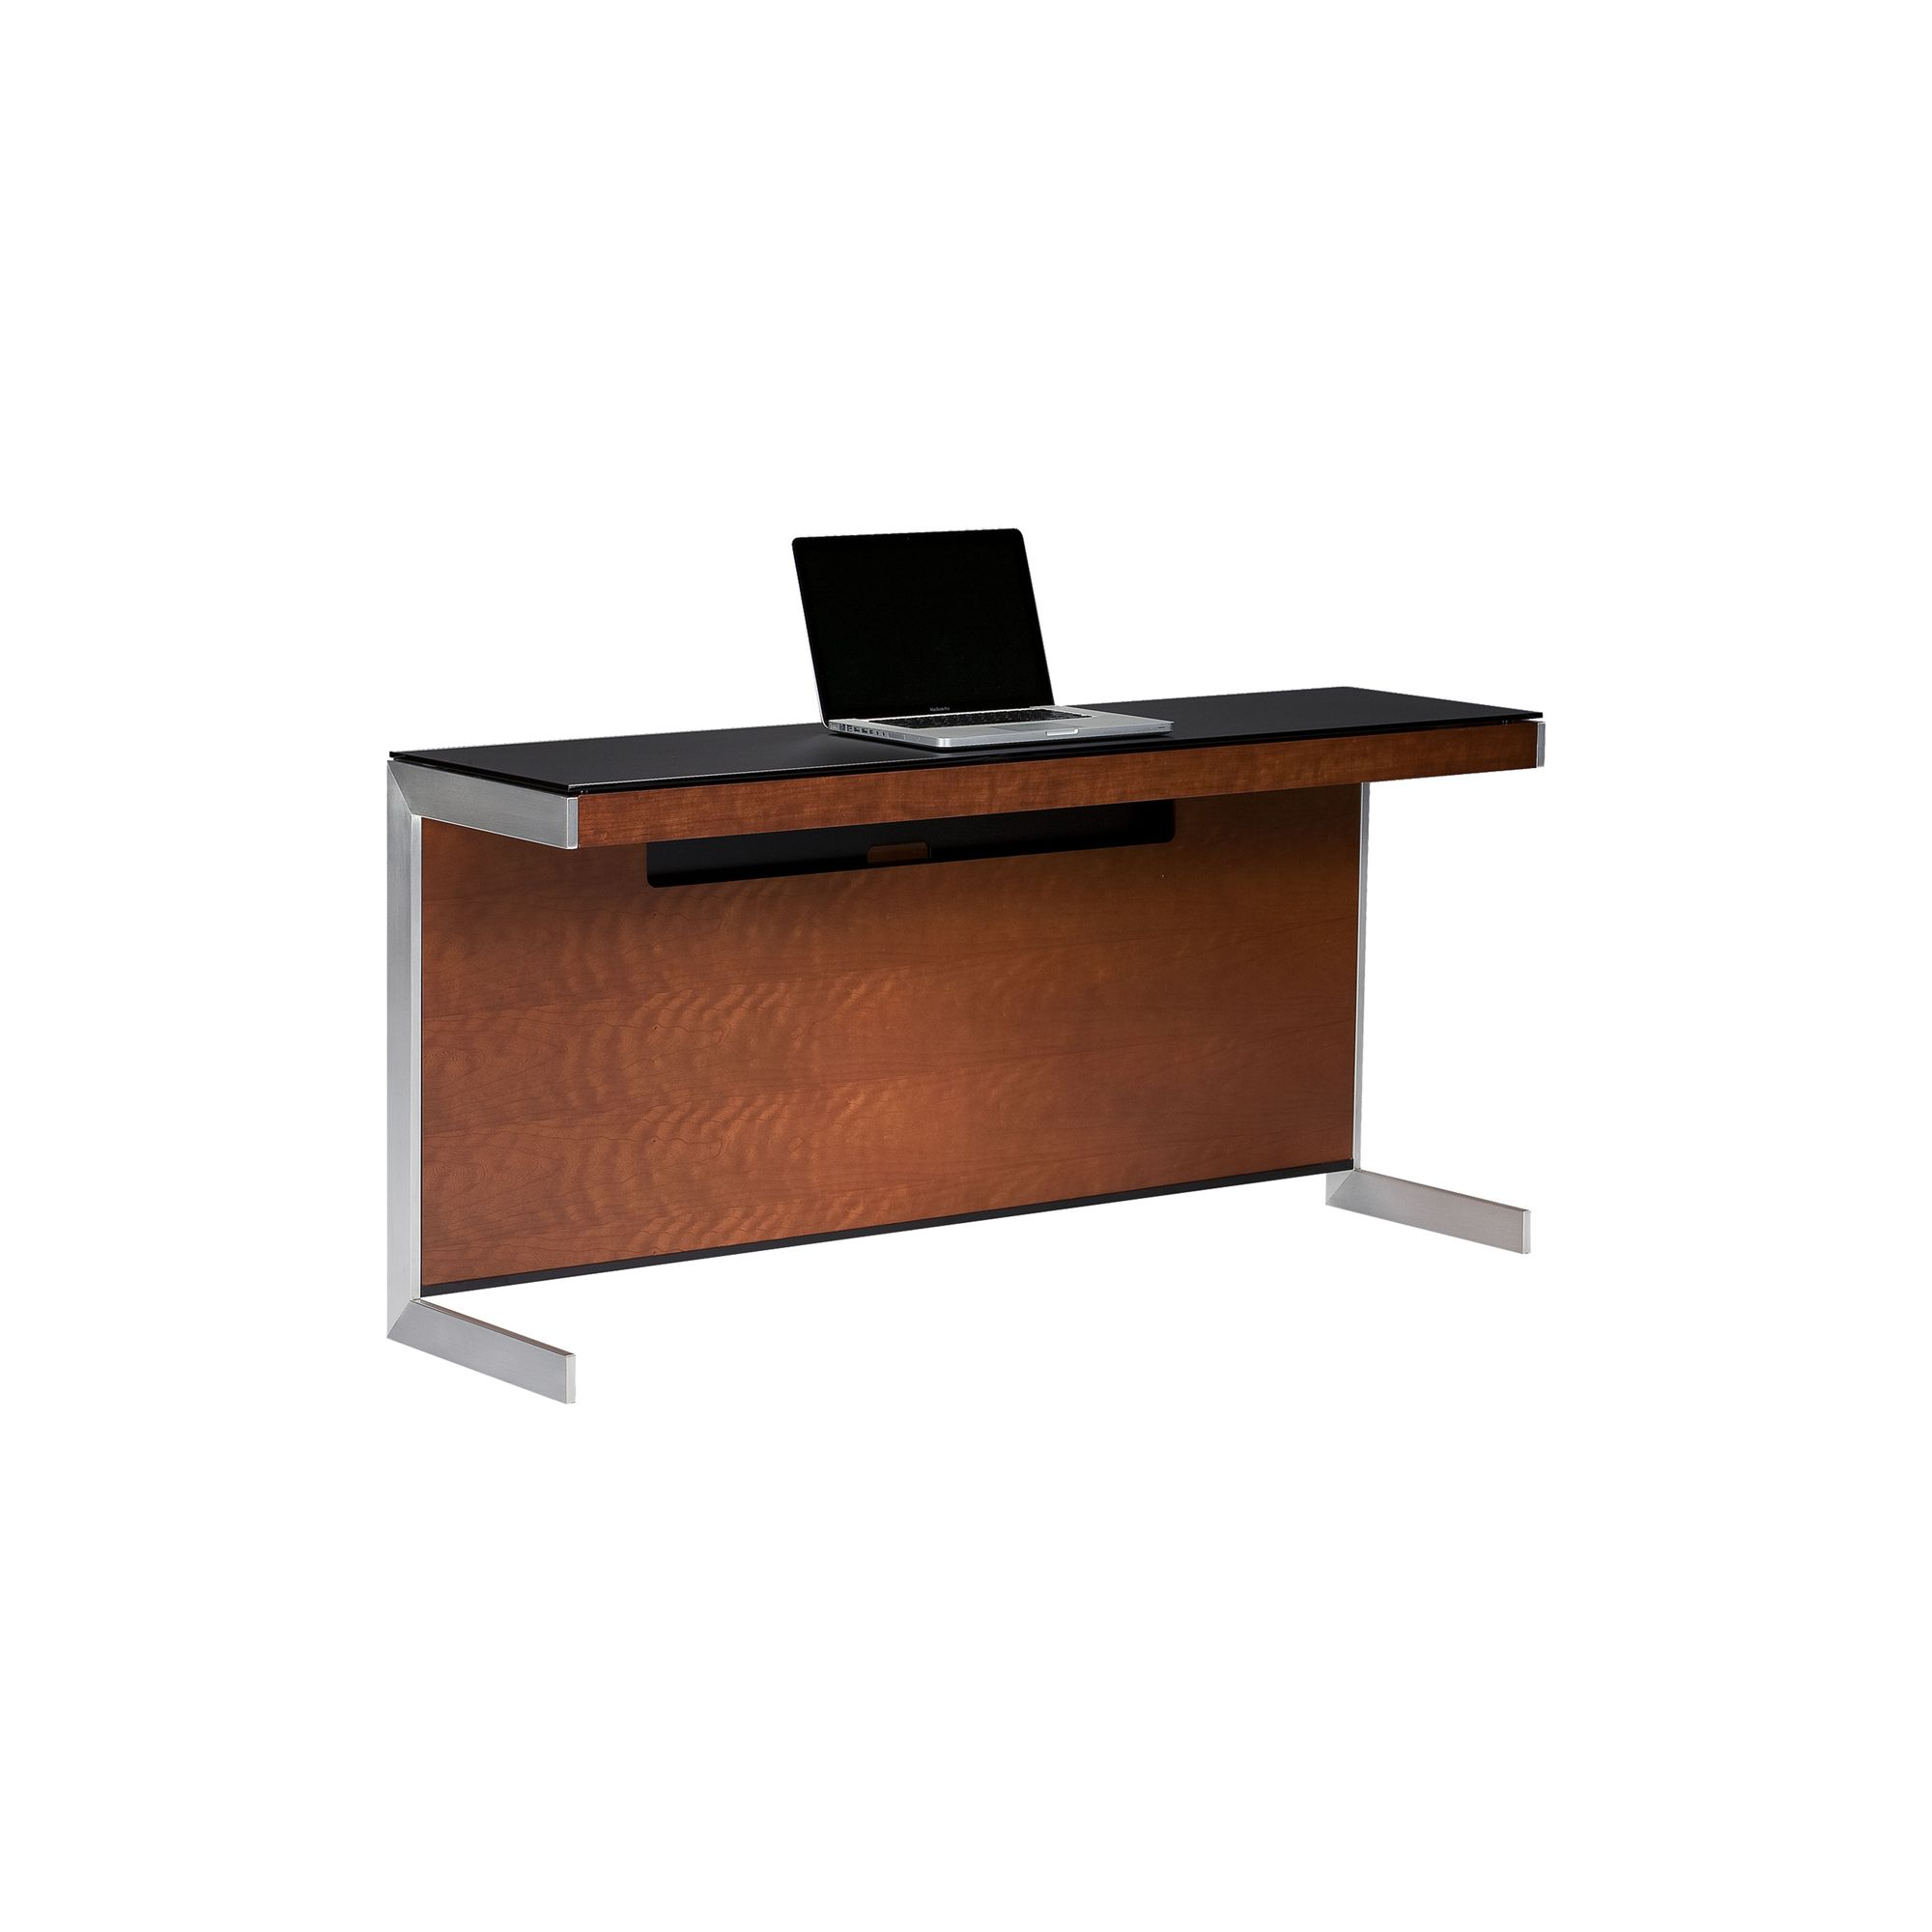 Sequel 6002 Desk in Natural Stained Cherry with Glass Top at Tesco Direct